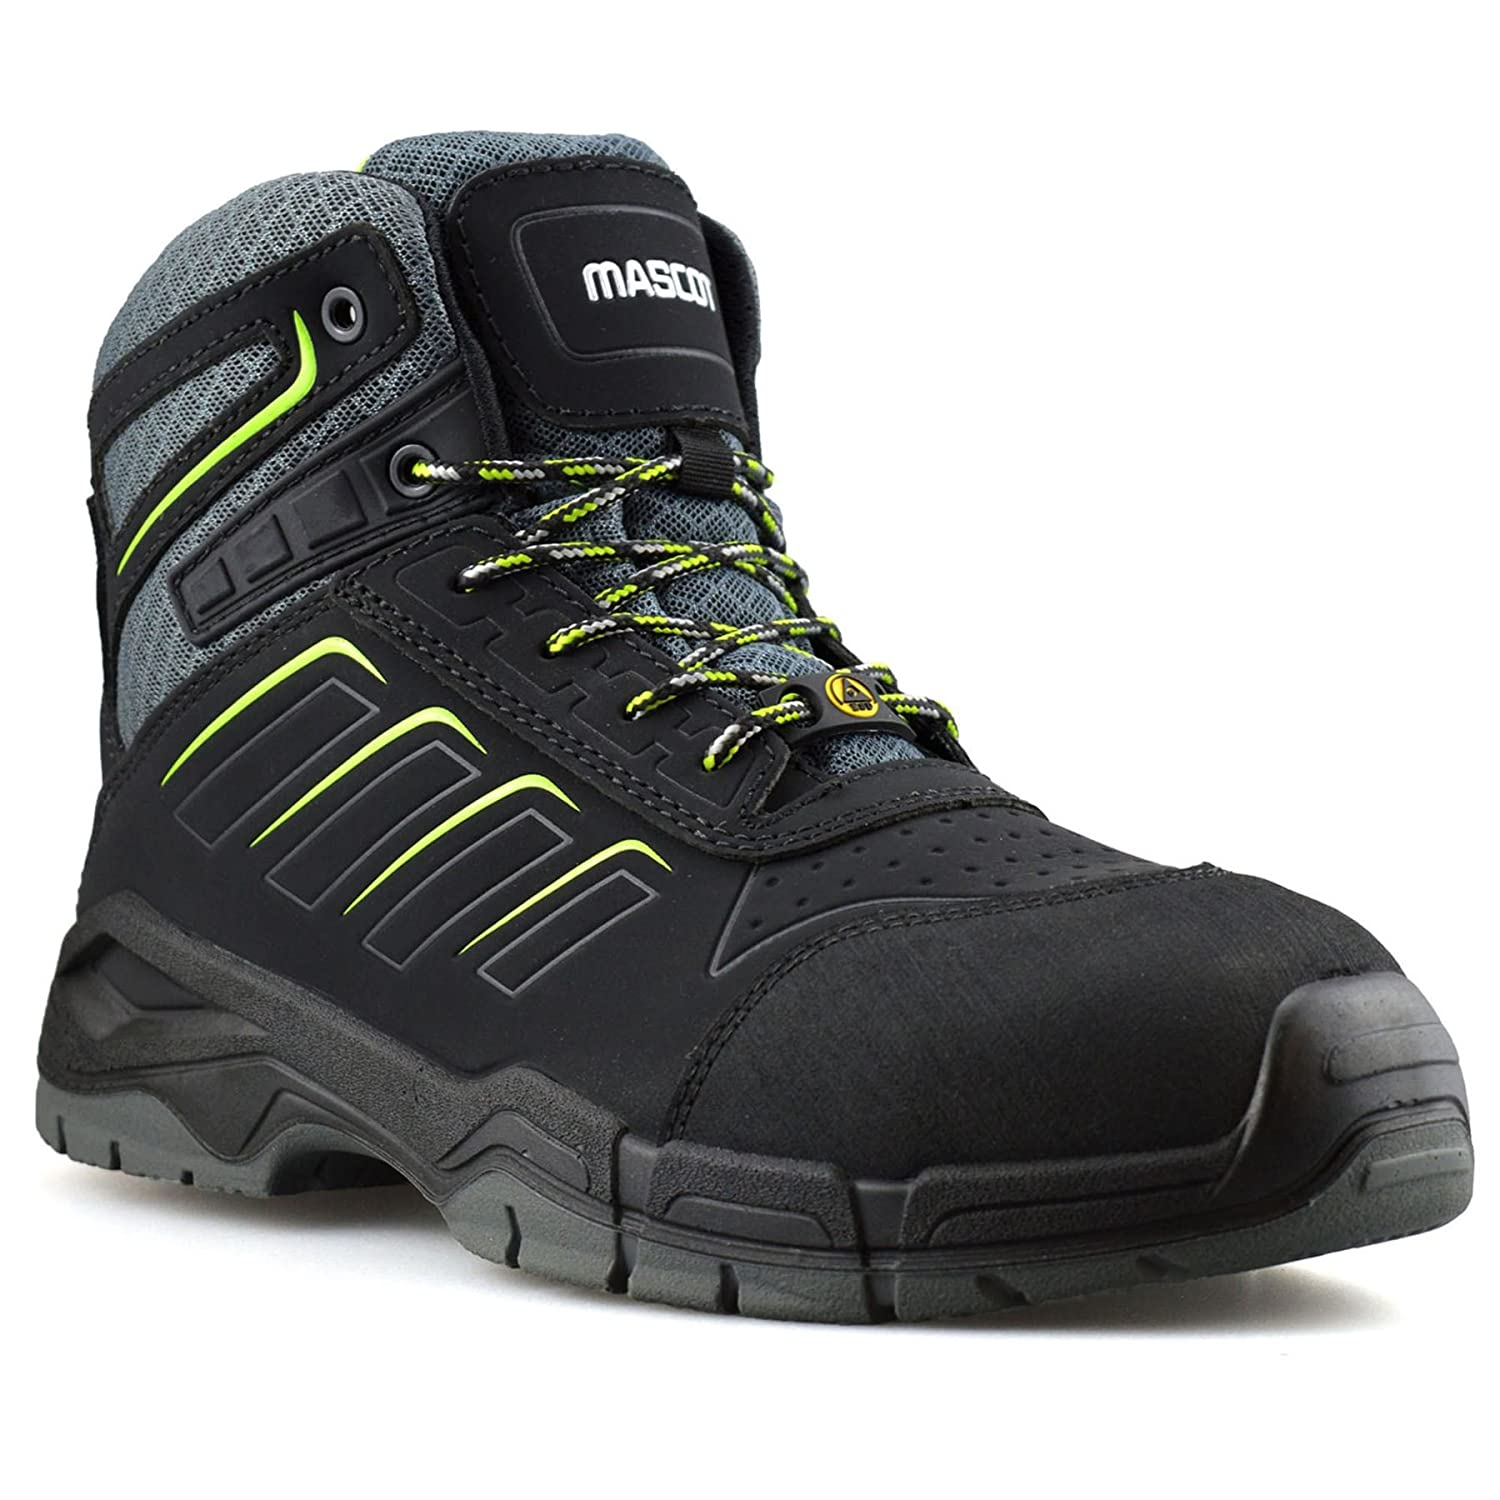 33e5e3849de Mascot Mens Leather Waterproof Safety Steel Toe Cap Work Ankle Hiker Boots  Shoes  Amazon.co.uk  Shoes   Bags